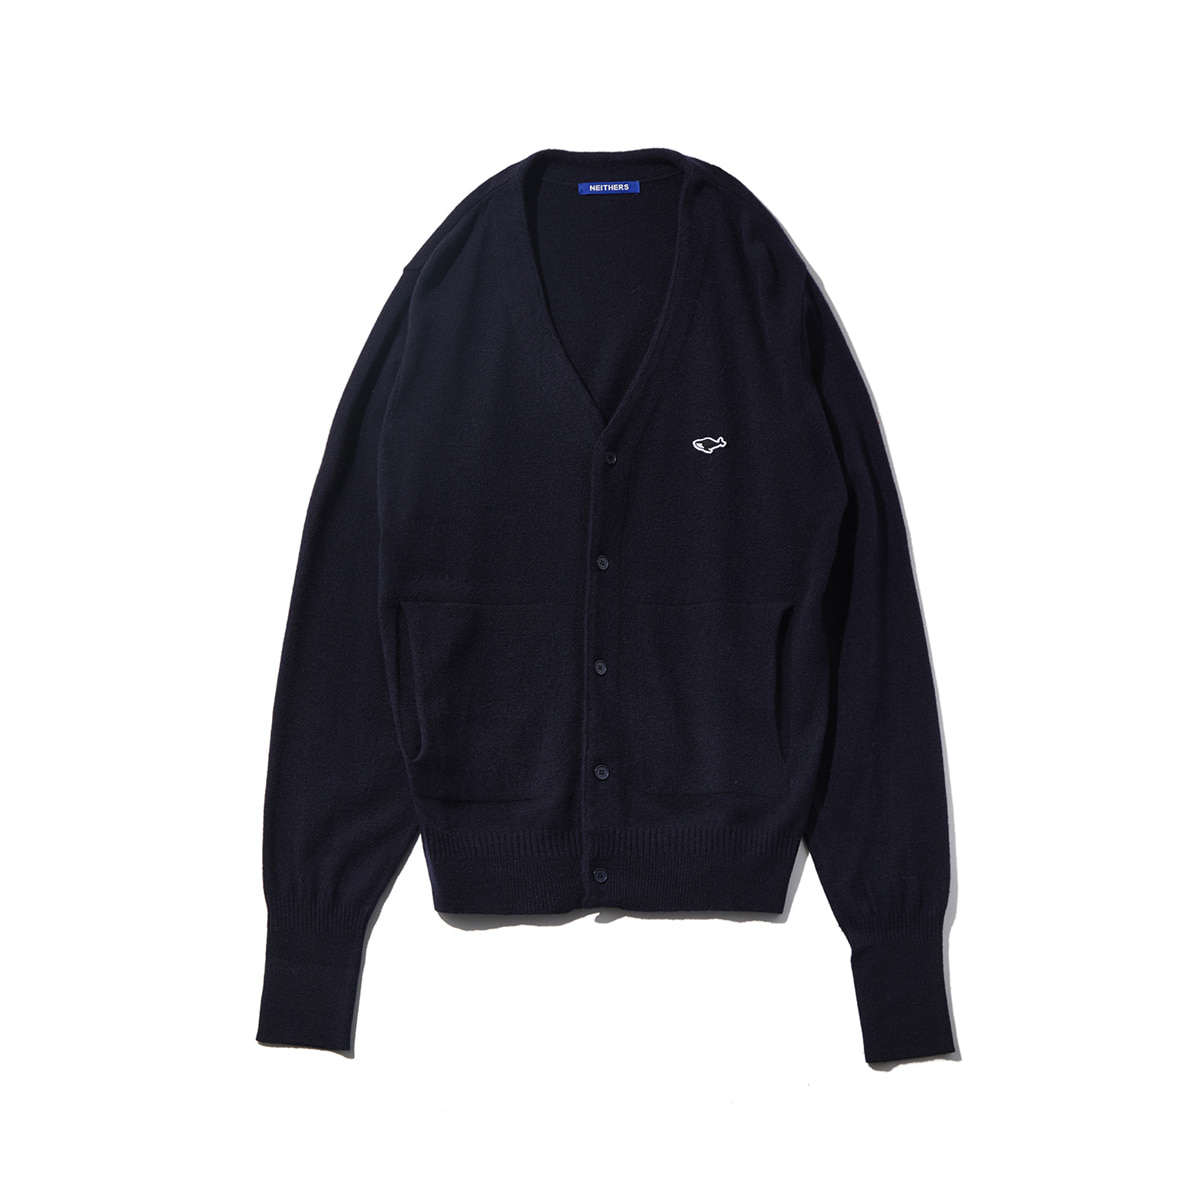 [NEITHERS] 107B-3 MERINO WOOL CARDIGAN 'NAVY'